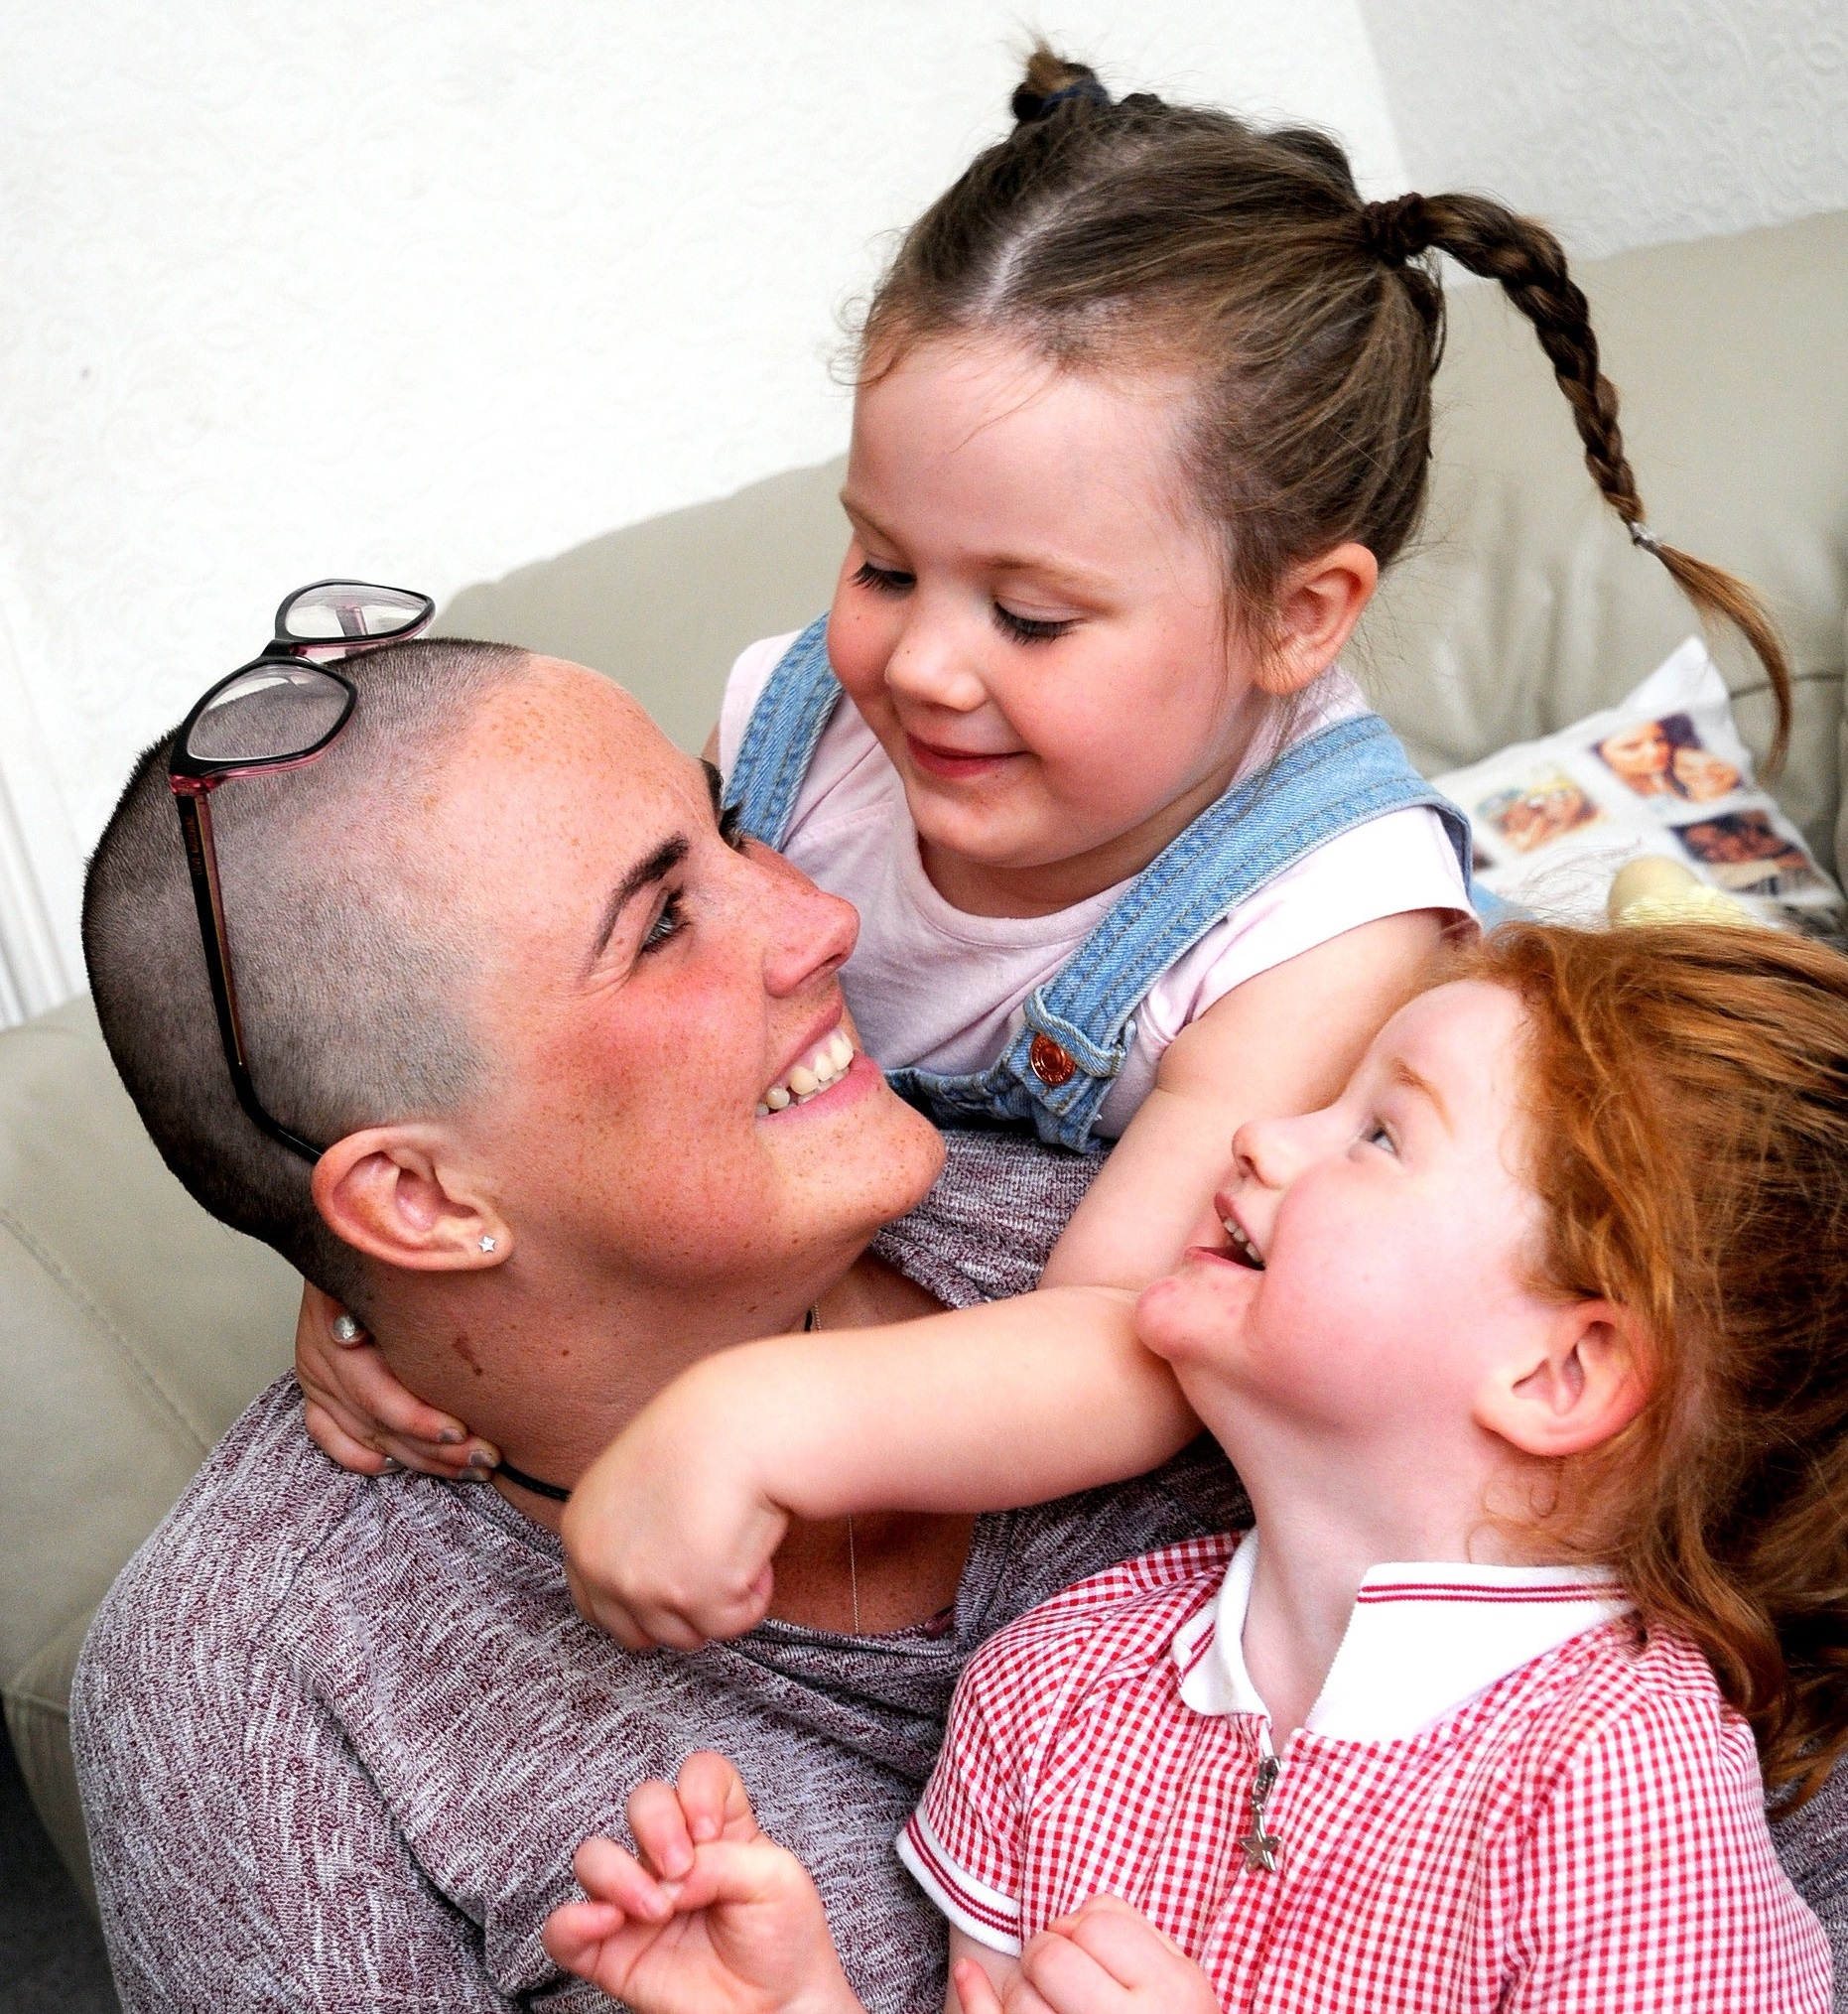 Mum-of-two Kirsty has been diagnosed with cancer. Her friend Charlotte has set up a fundraising page. Get family shots with the kids.